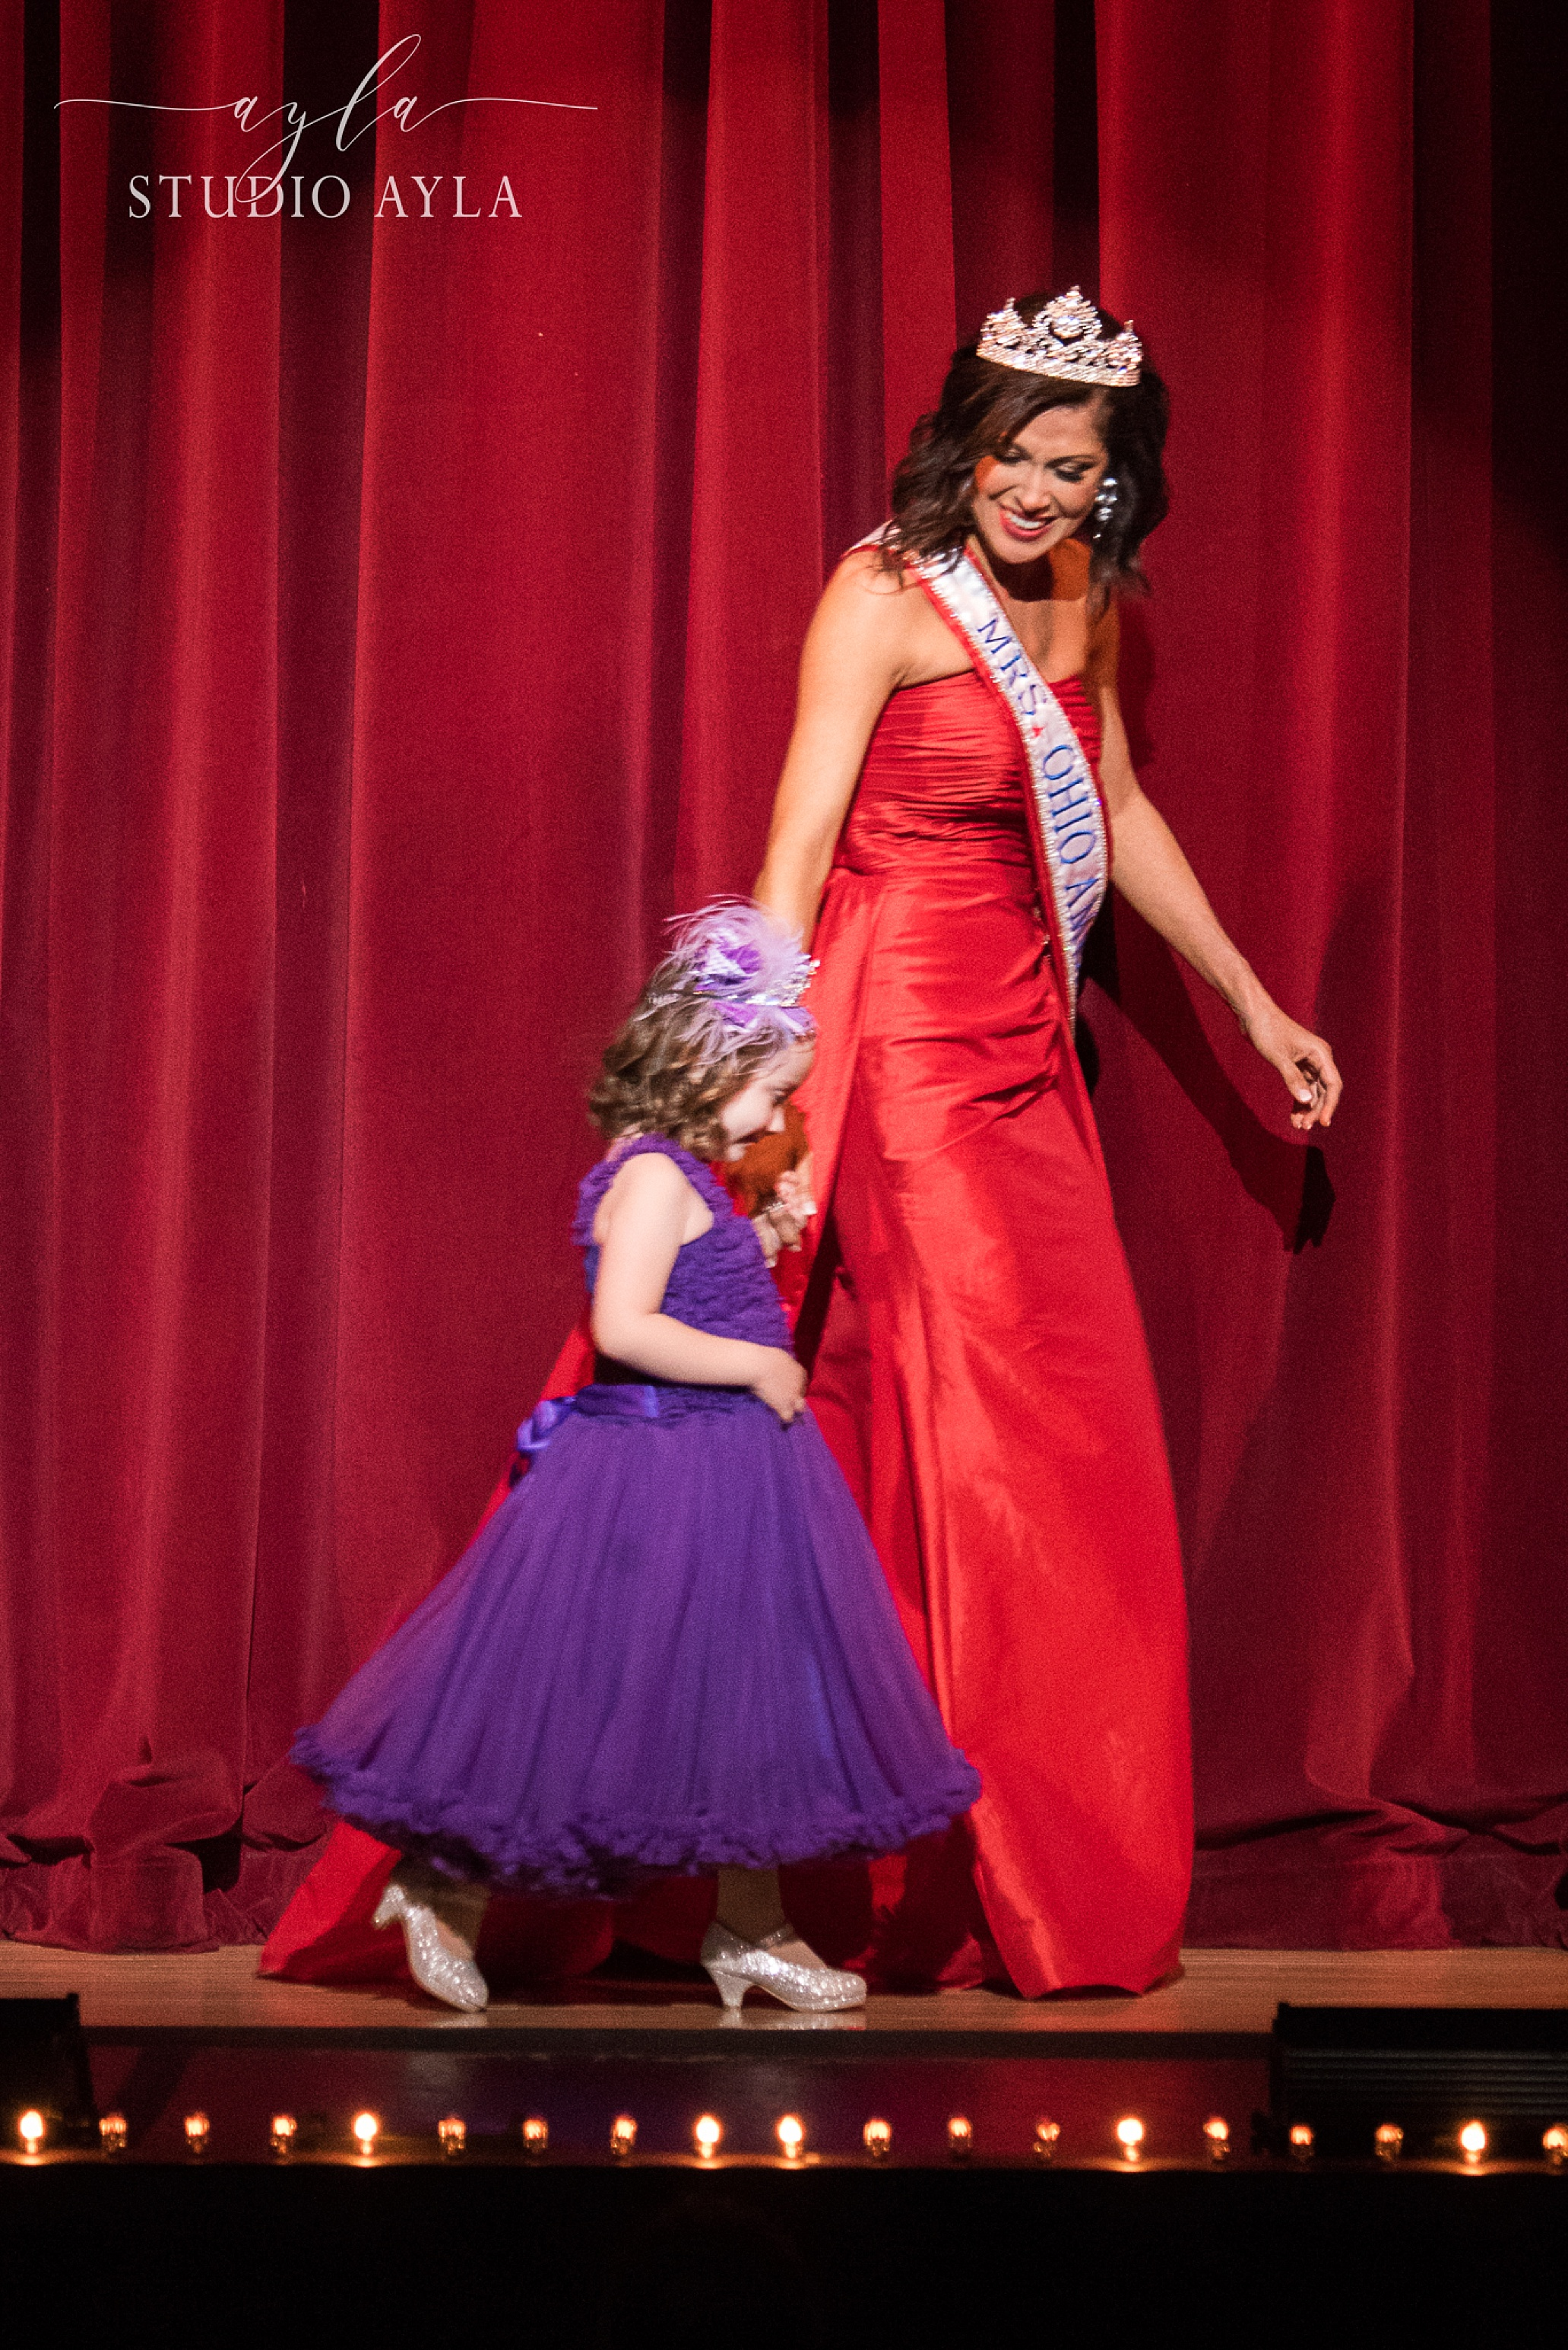 Mrs. Ohio 2016, Heather Fronk, with a special guest. As Ohio wives and mothers, we strive to make little girls across the state feel like the special princesses that they are.